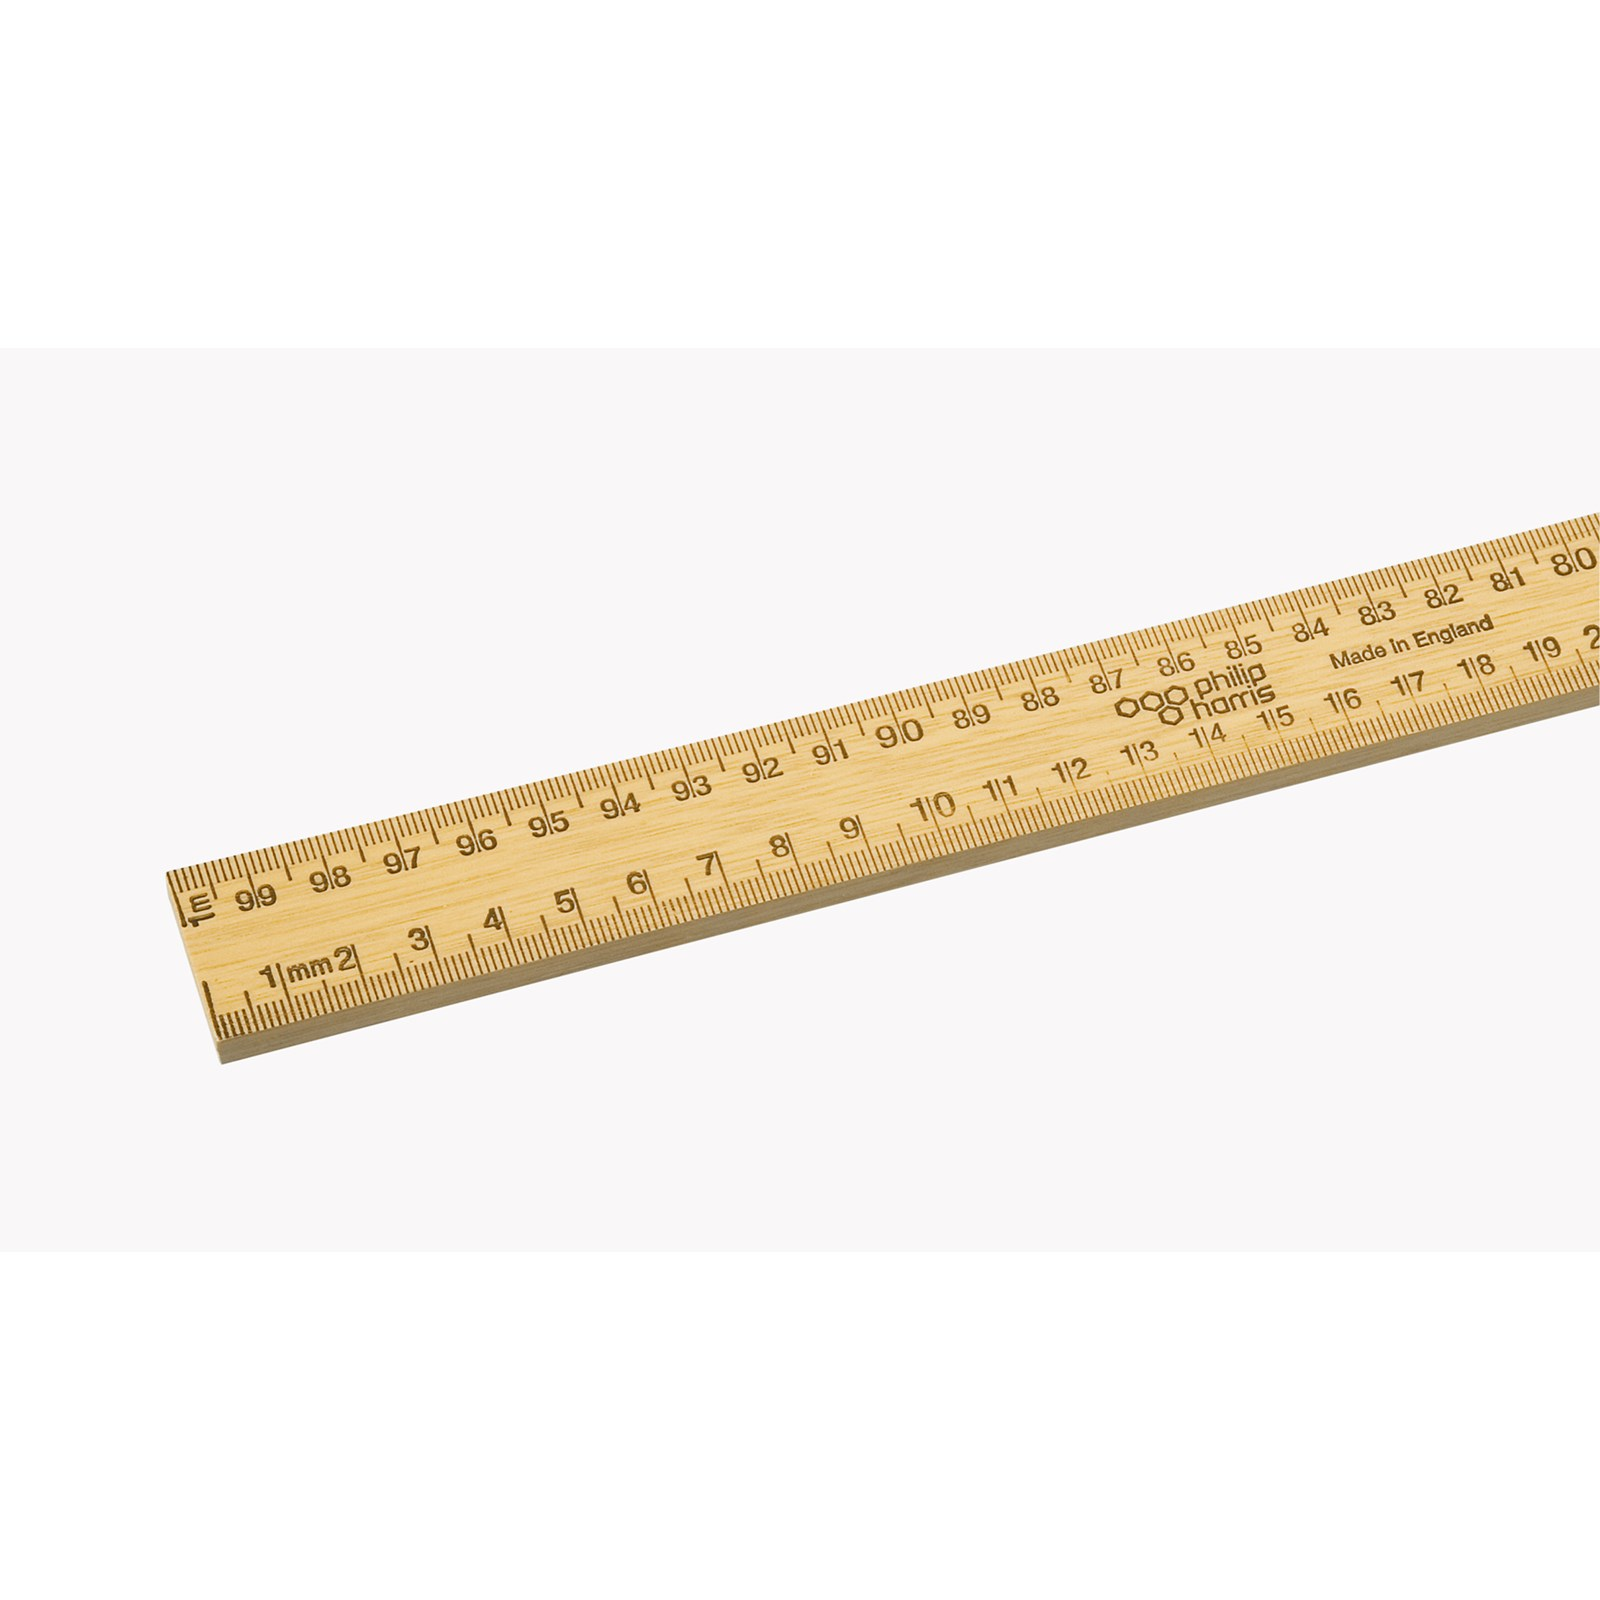 Experiments Instruments Measurement: Horizontal Reading Metre Rule, Both Edges Divided